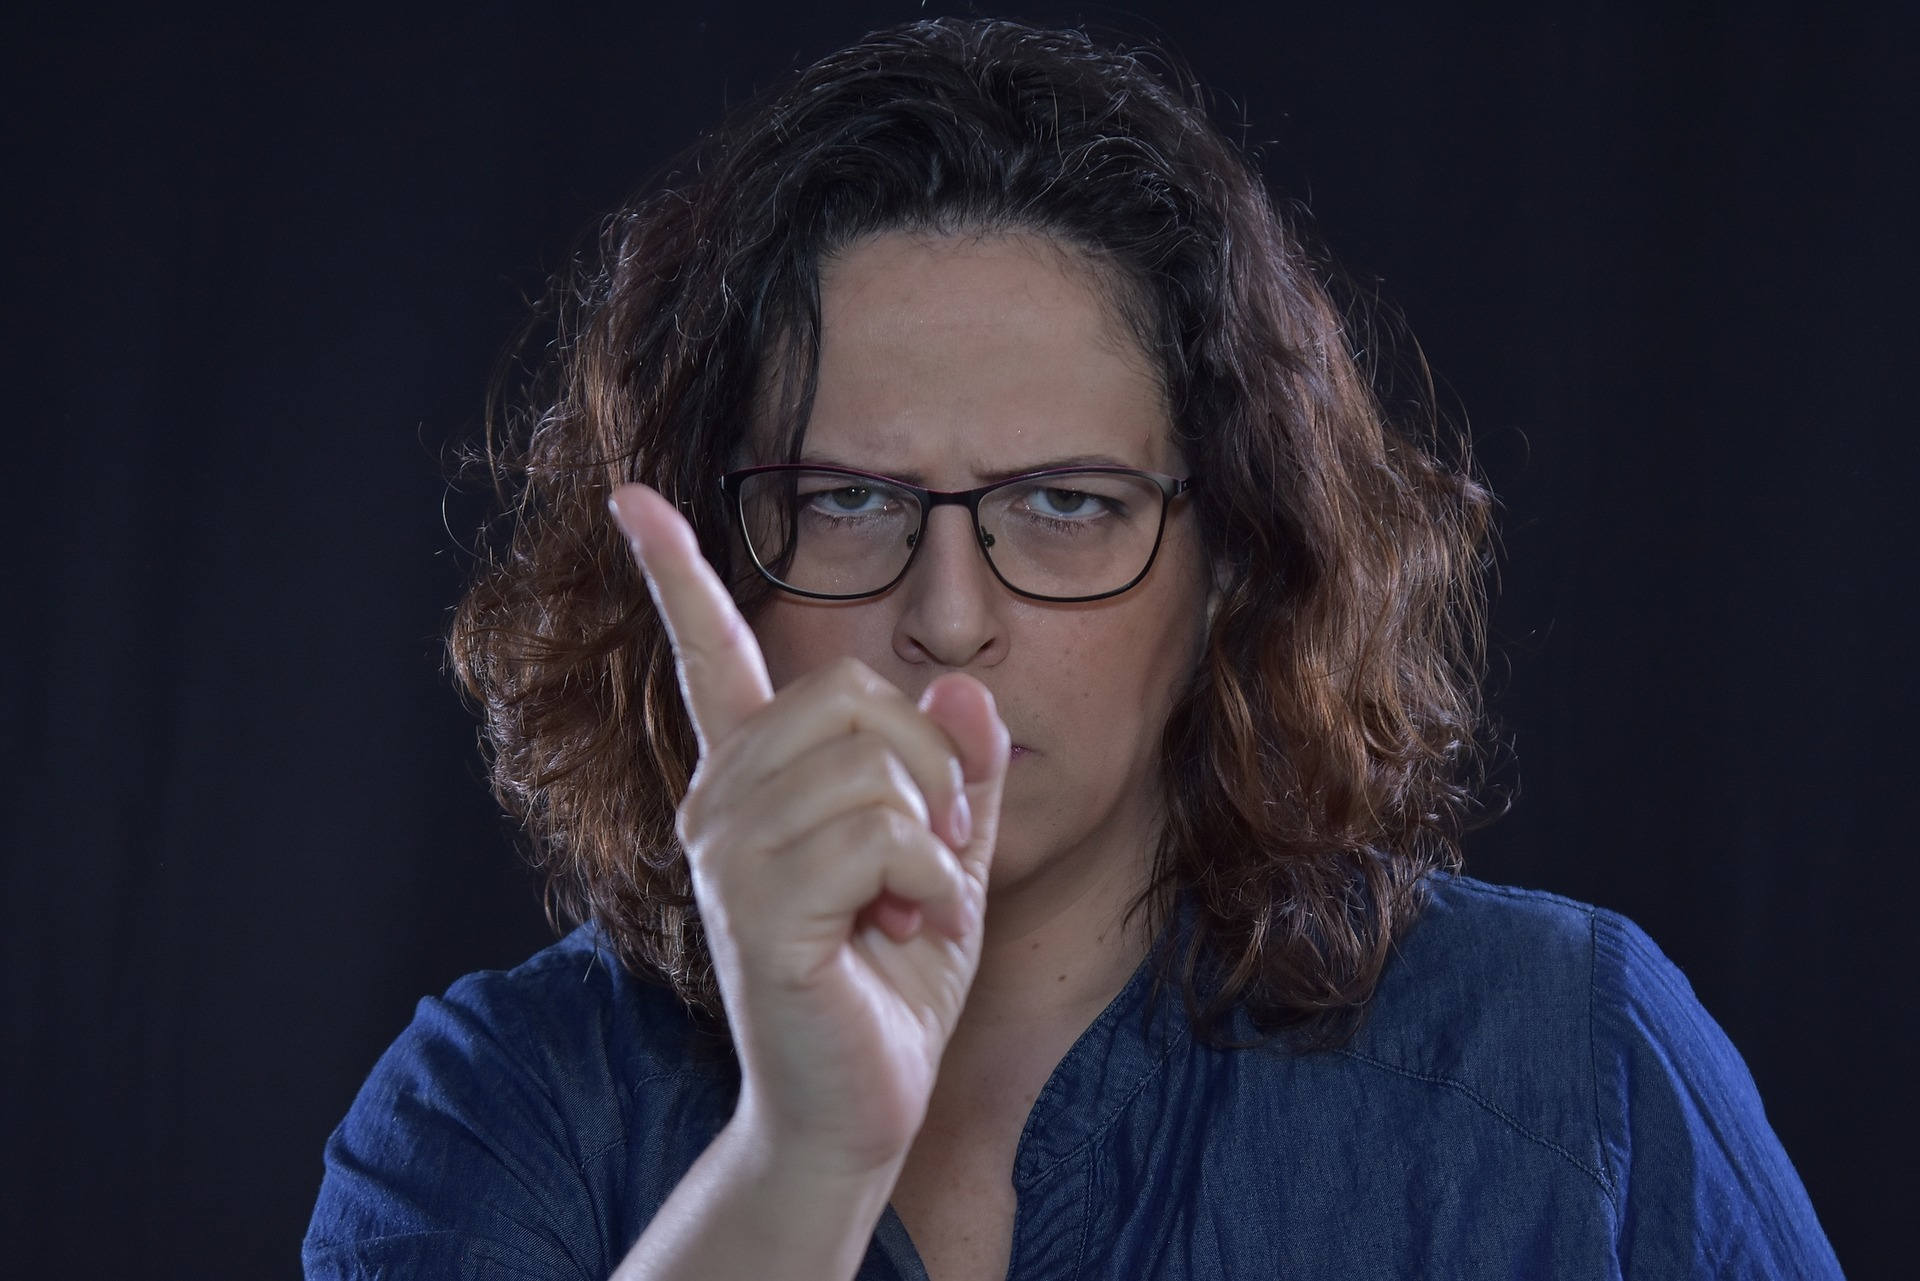 woman pointing finger sternly